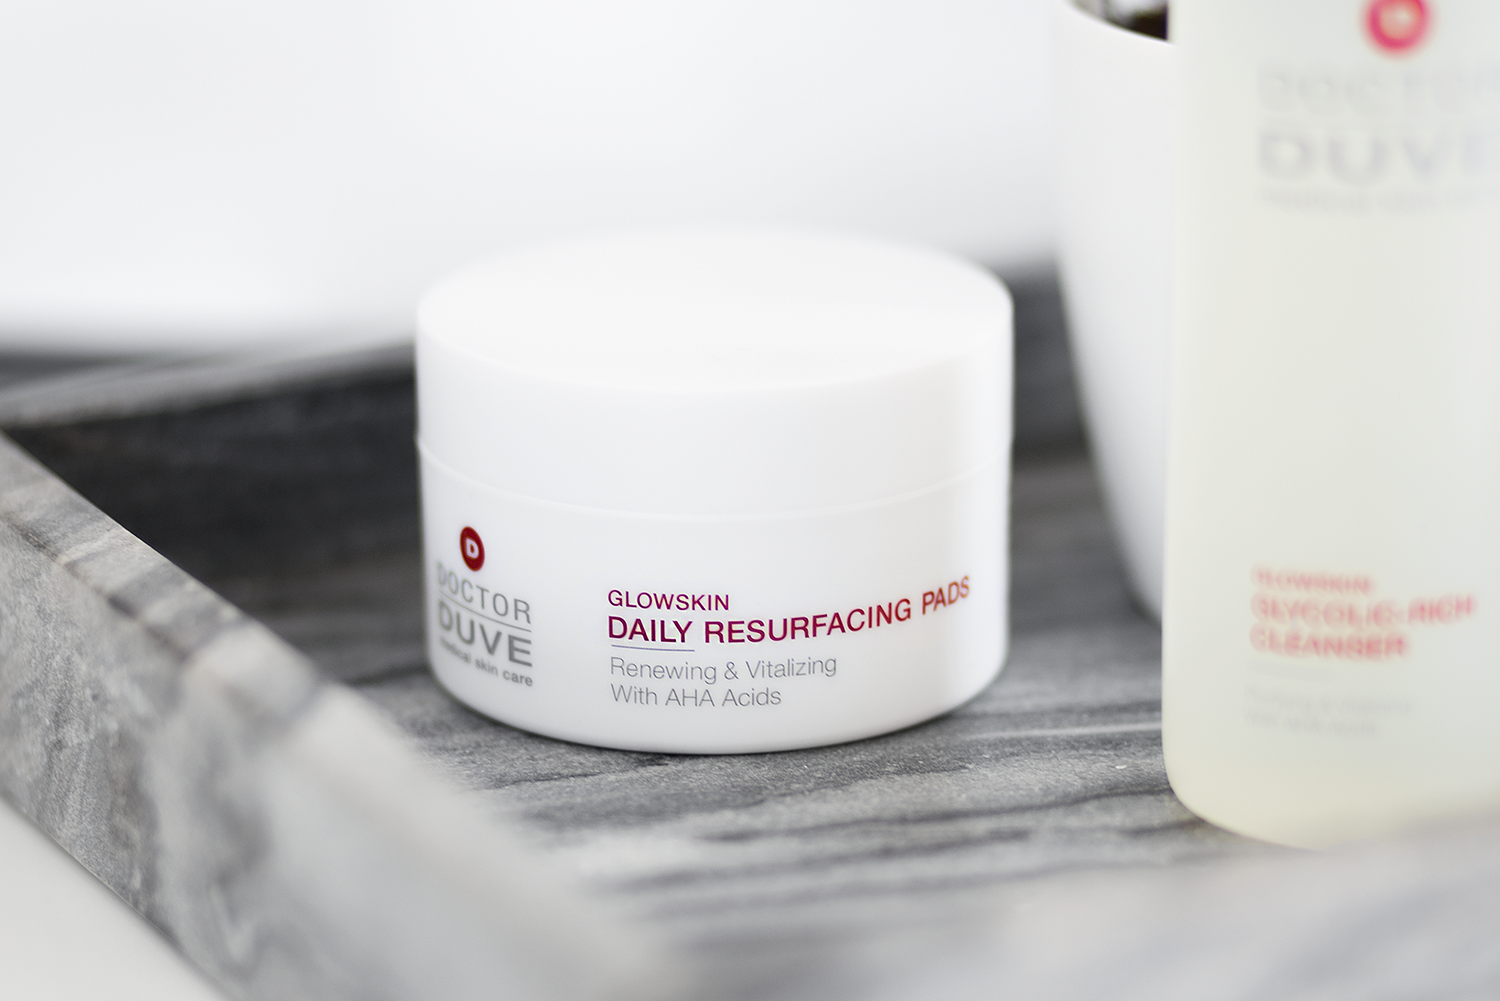 Erfahrungen mit Doctor Dave medical skincare, Glowskin Daily Resurfing Pads Test, Beauty Review, bezauberndenana.de